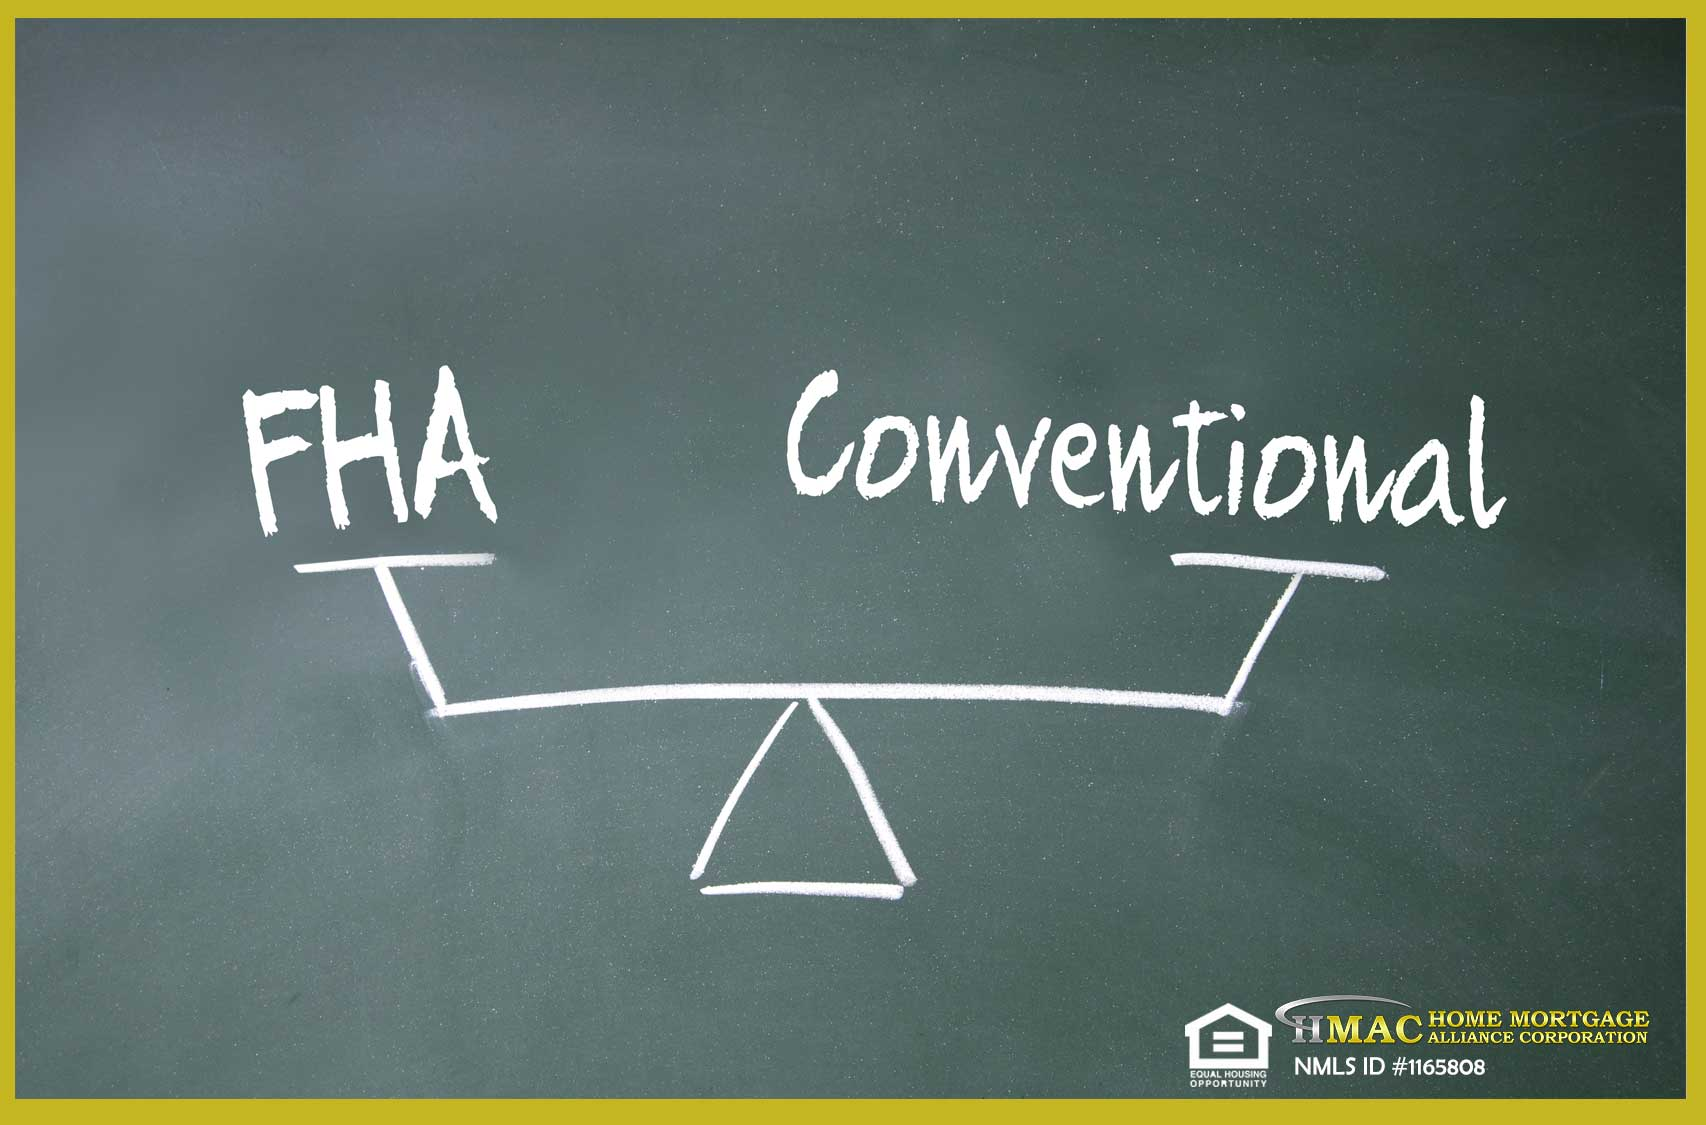 fha or conventional